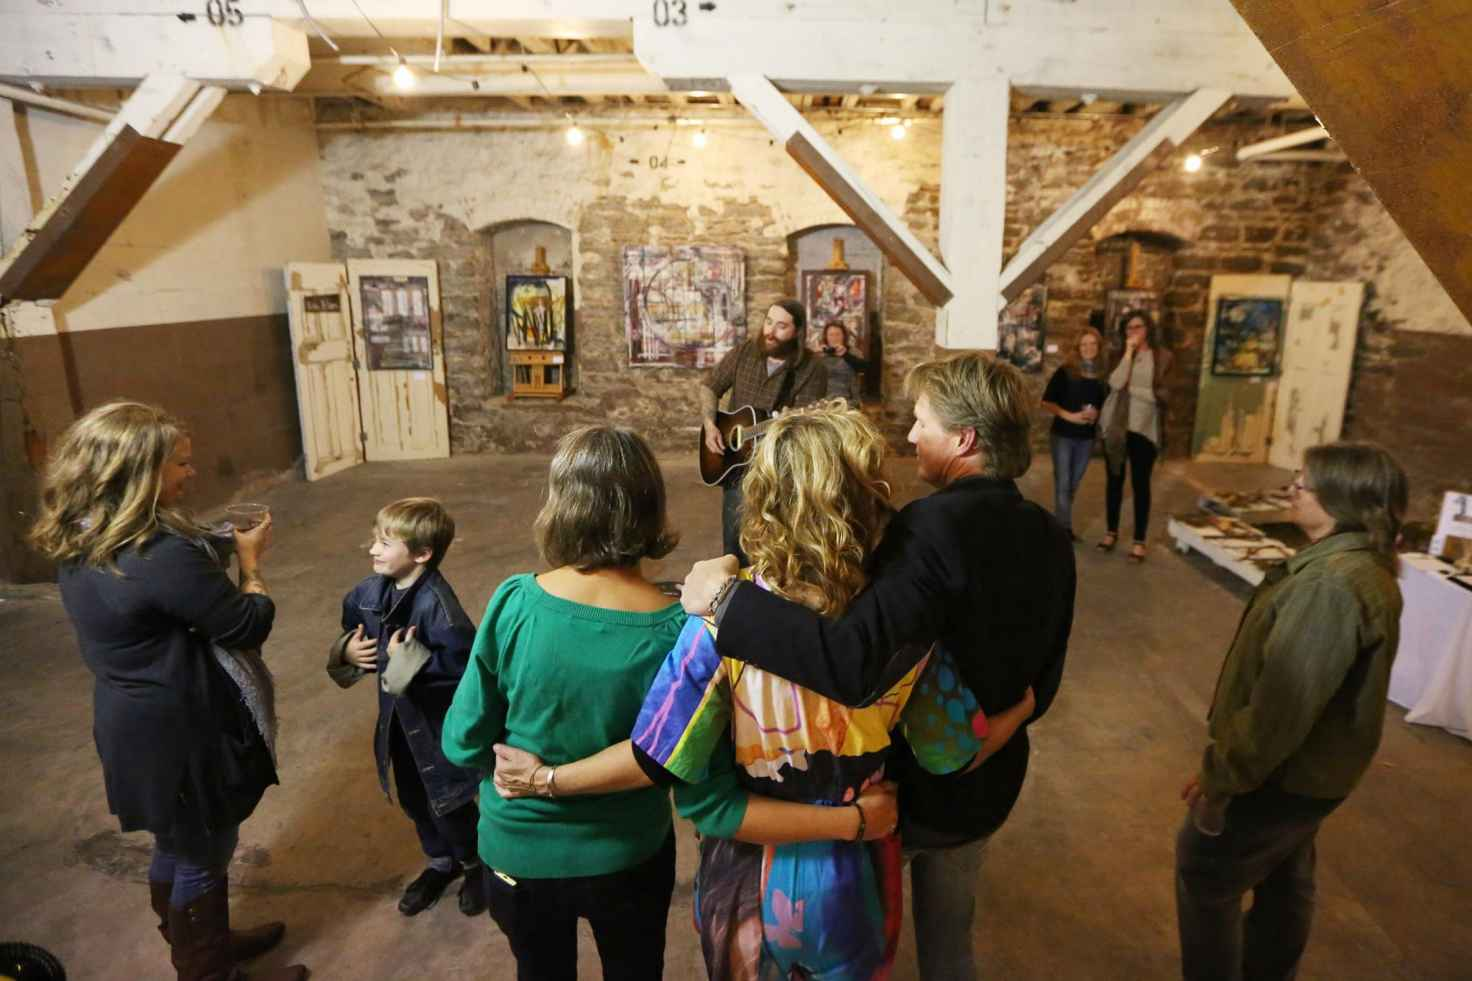 Fox Cities community gathers to celebrate local art. (Photo by Larry Radloff.)